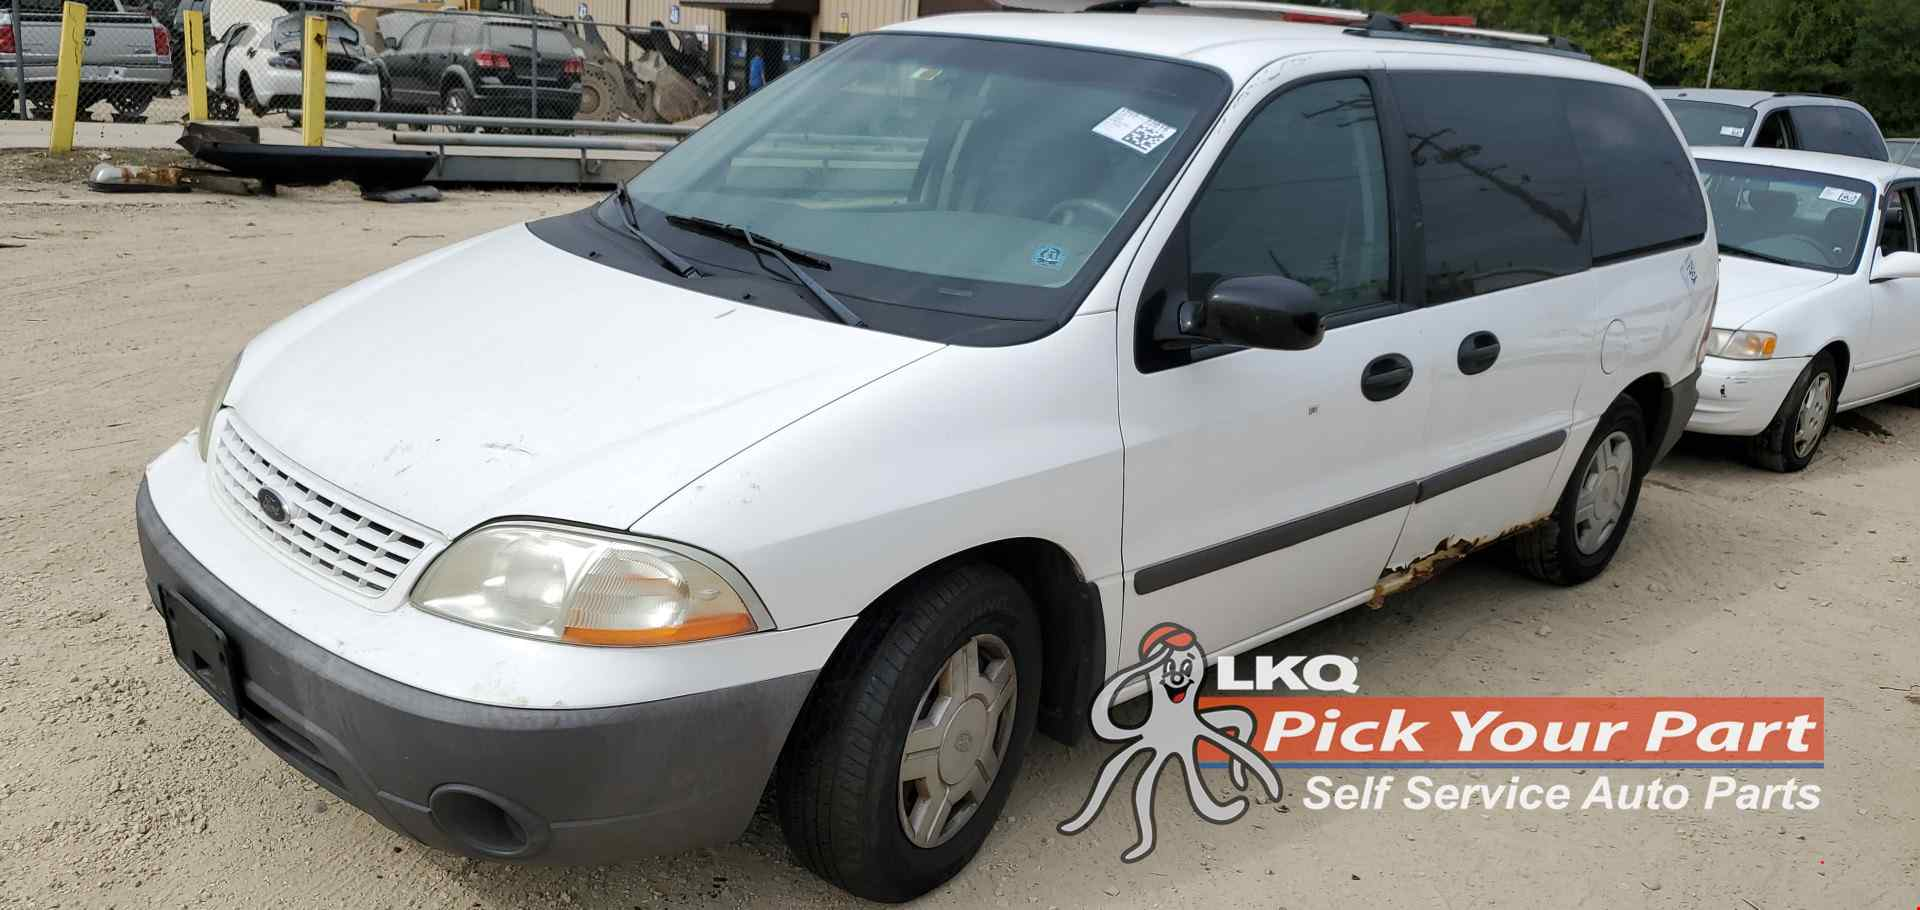 2001 ford windstar used auto parts lkq pick your part rockford lkq pick your part